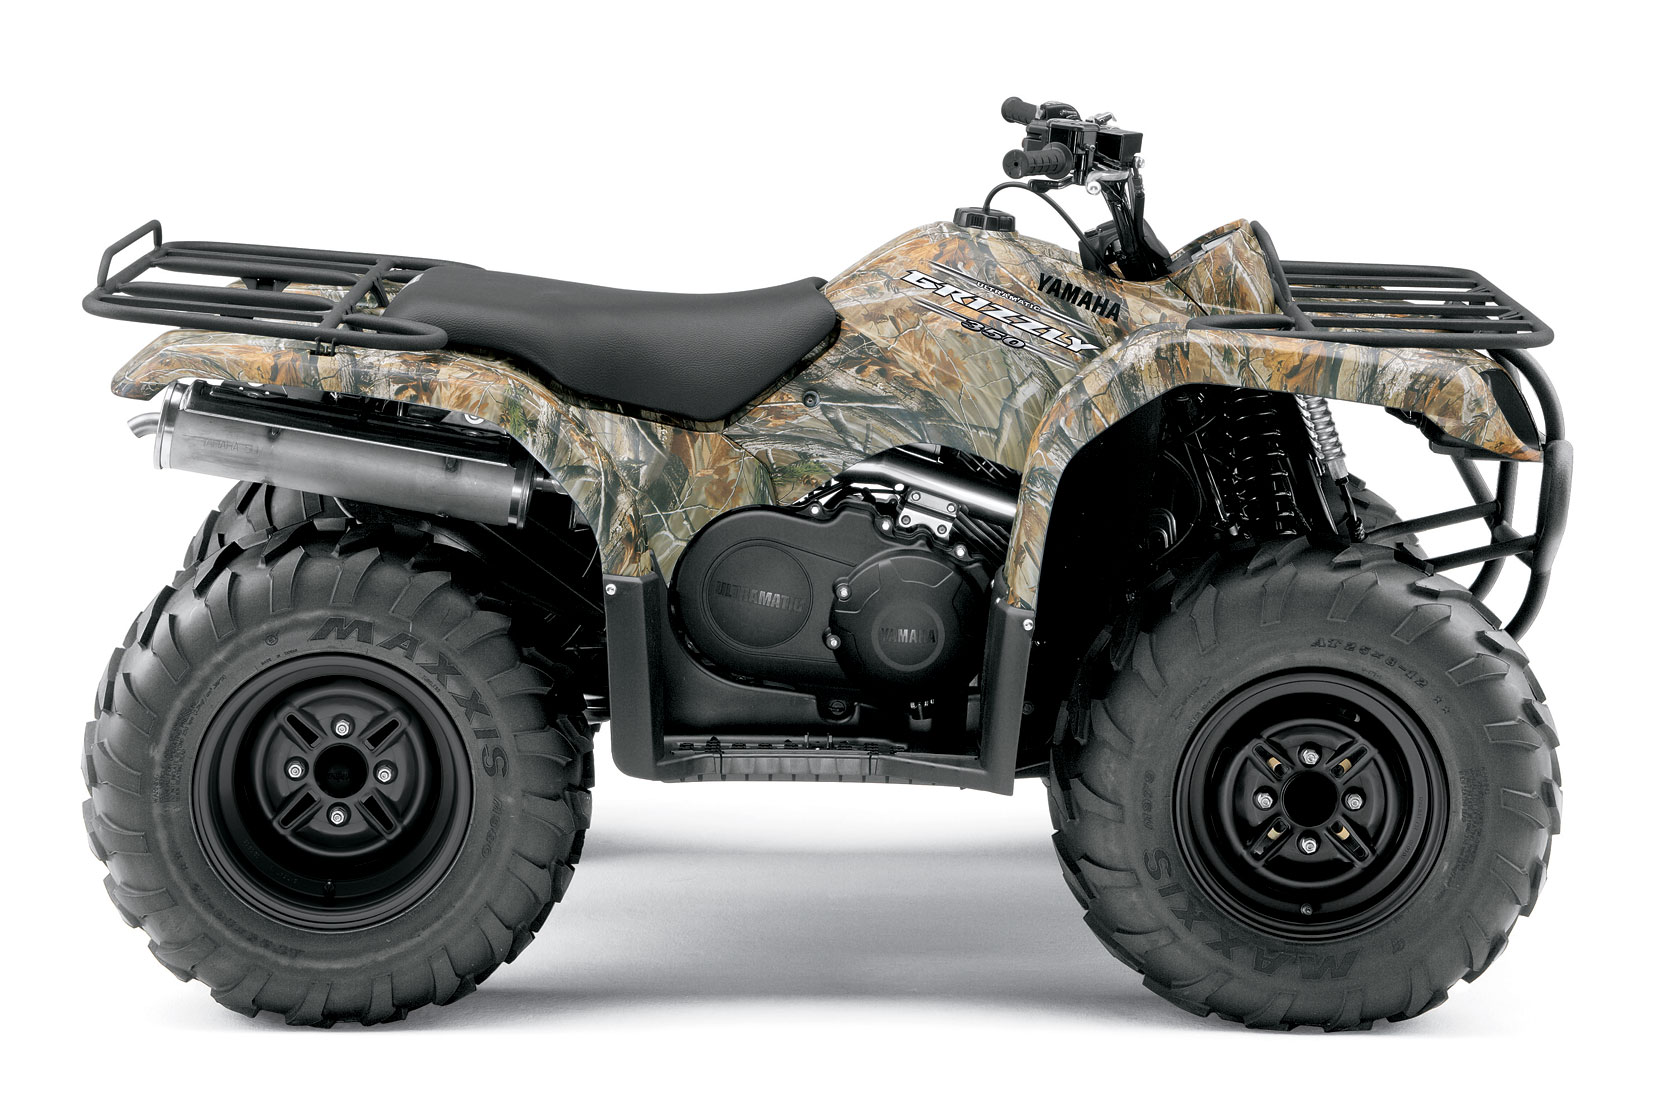 Yamaha Grizzly 350 2wd Specs